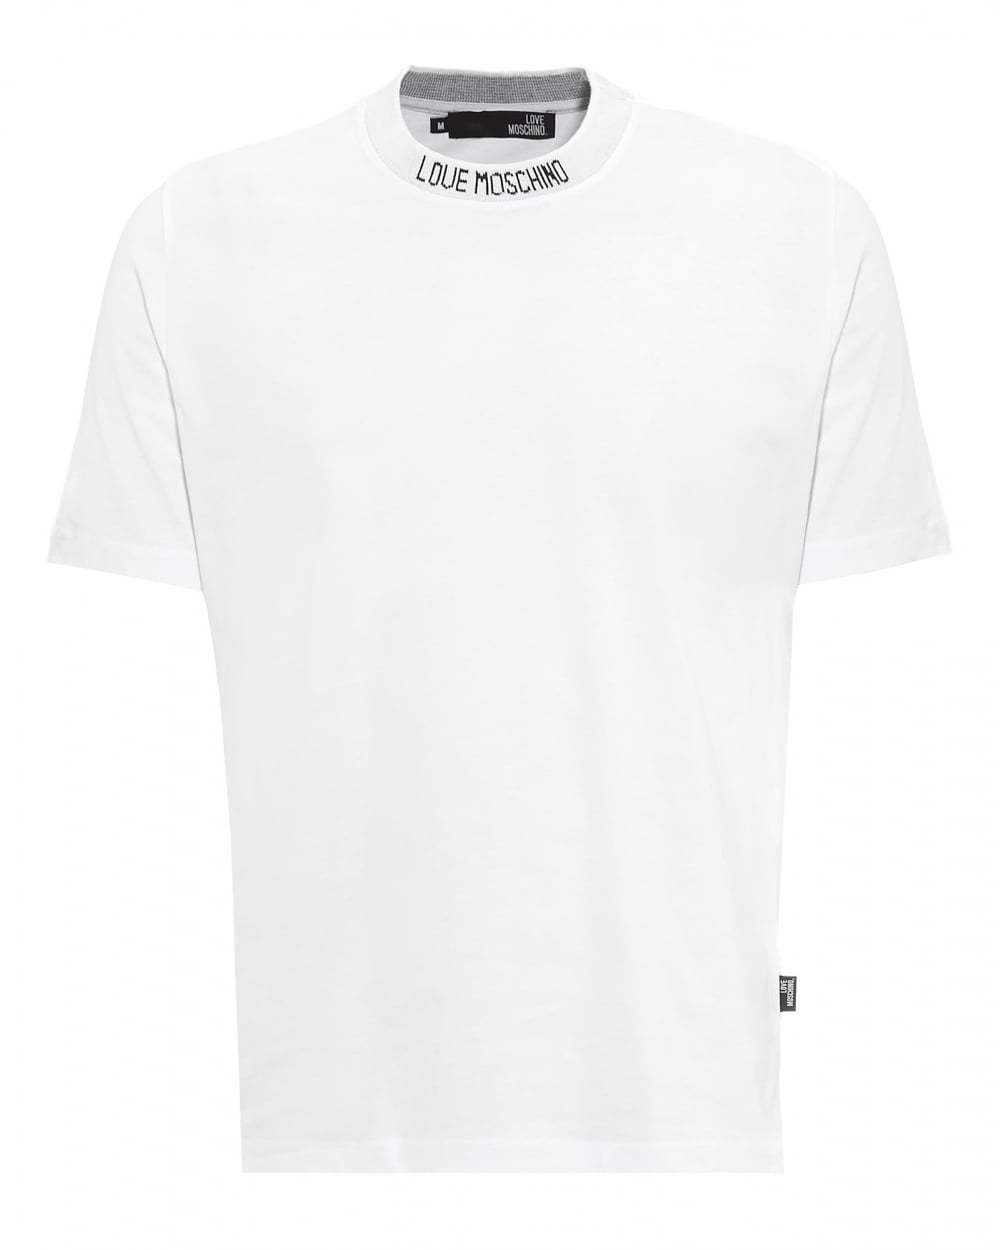 Love Moschino Neck Logo T-Shirt Tシャツ ラブモスキーノ